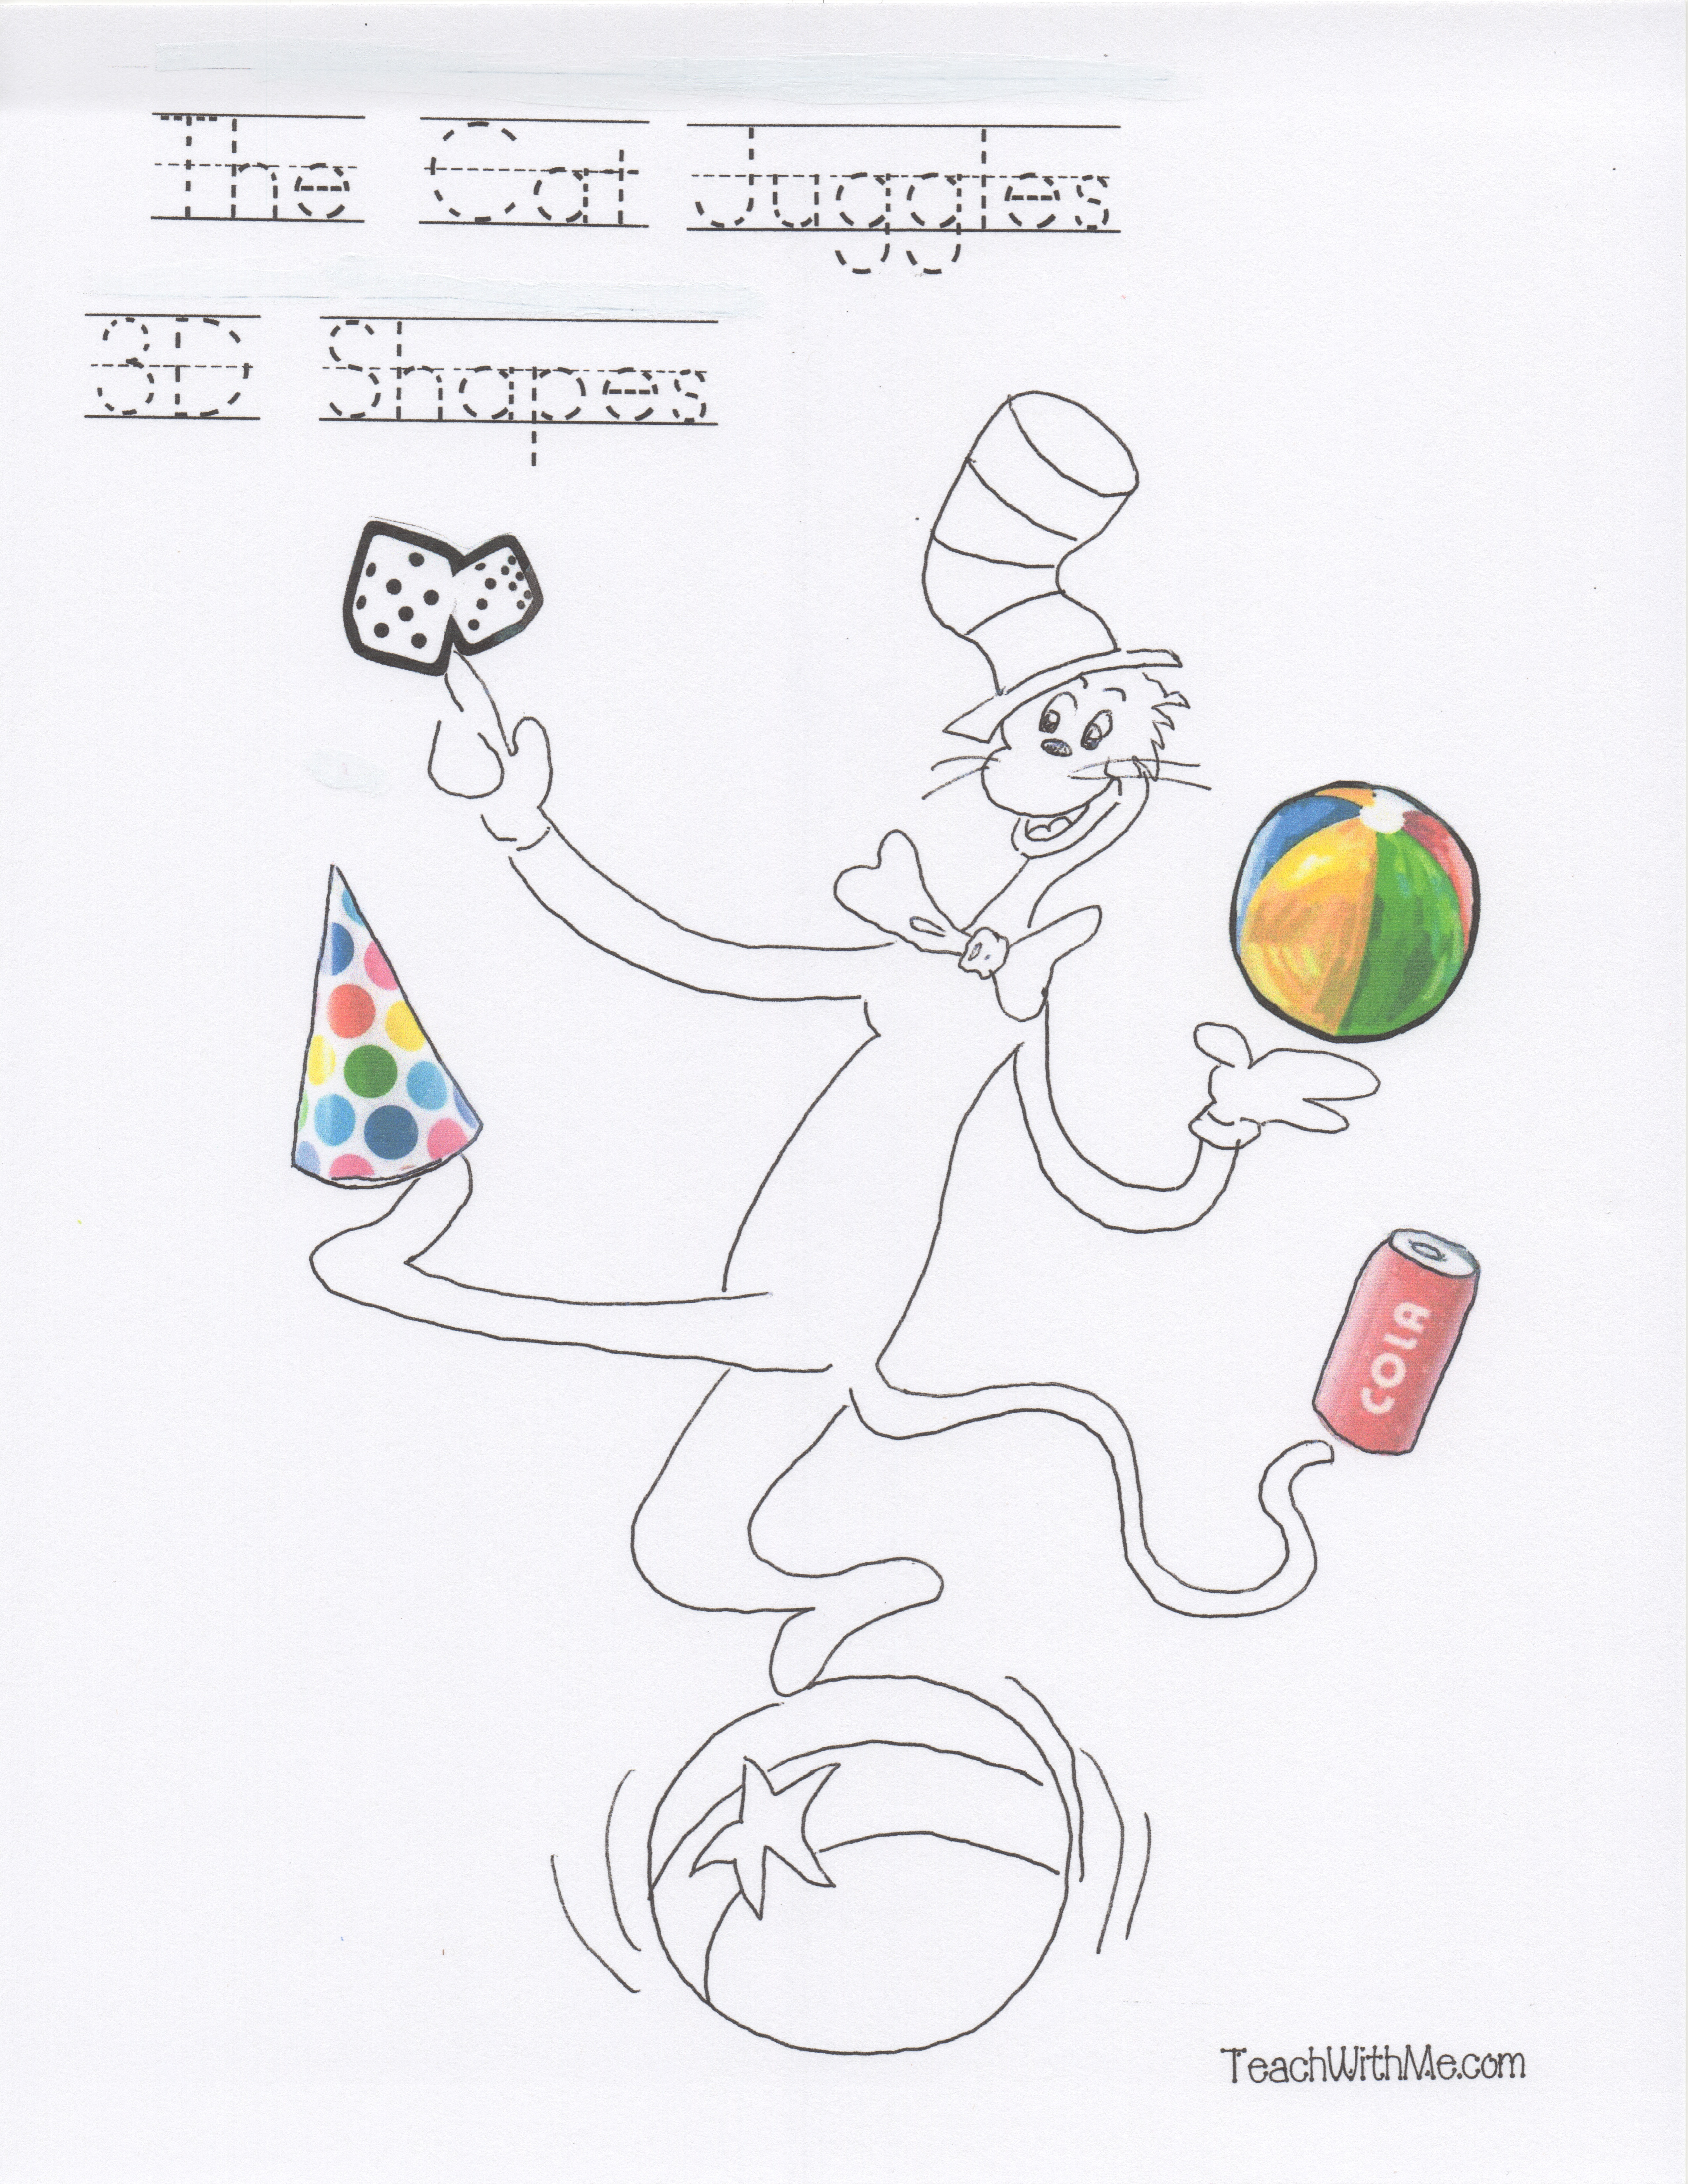 cat in the hat activities, cat in the hat lessons, cat in the hat ideas, cat juggles shape booklet, shape booklets, 2D shape activities, 3D shape activities, hexagon activities, cone cylinder cube sphere activities, Seuss lessons, Seuss activities, Seuss ideas, end punctuation lessons, capital letter lessons, end punctuation activities, capital letter activities,